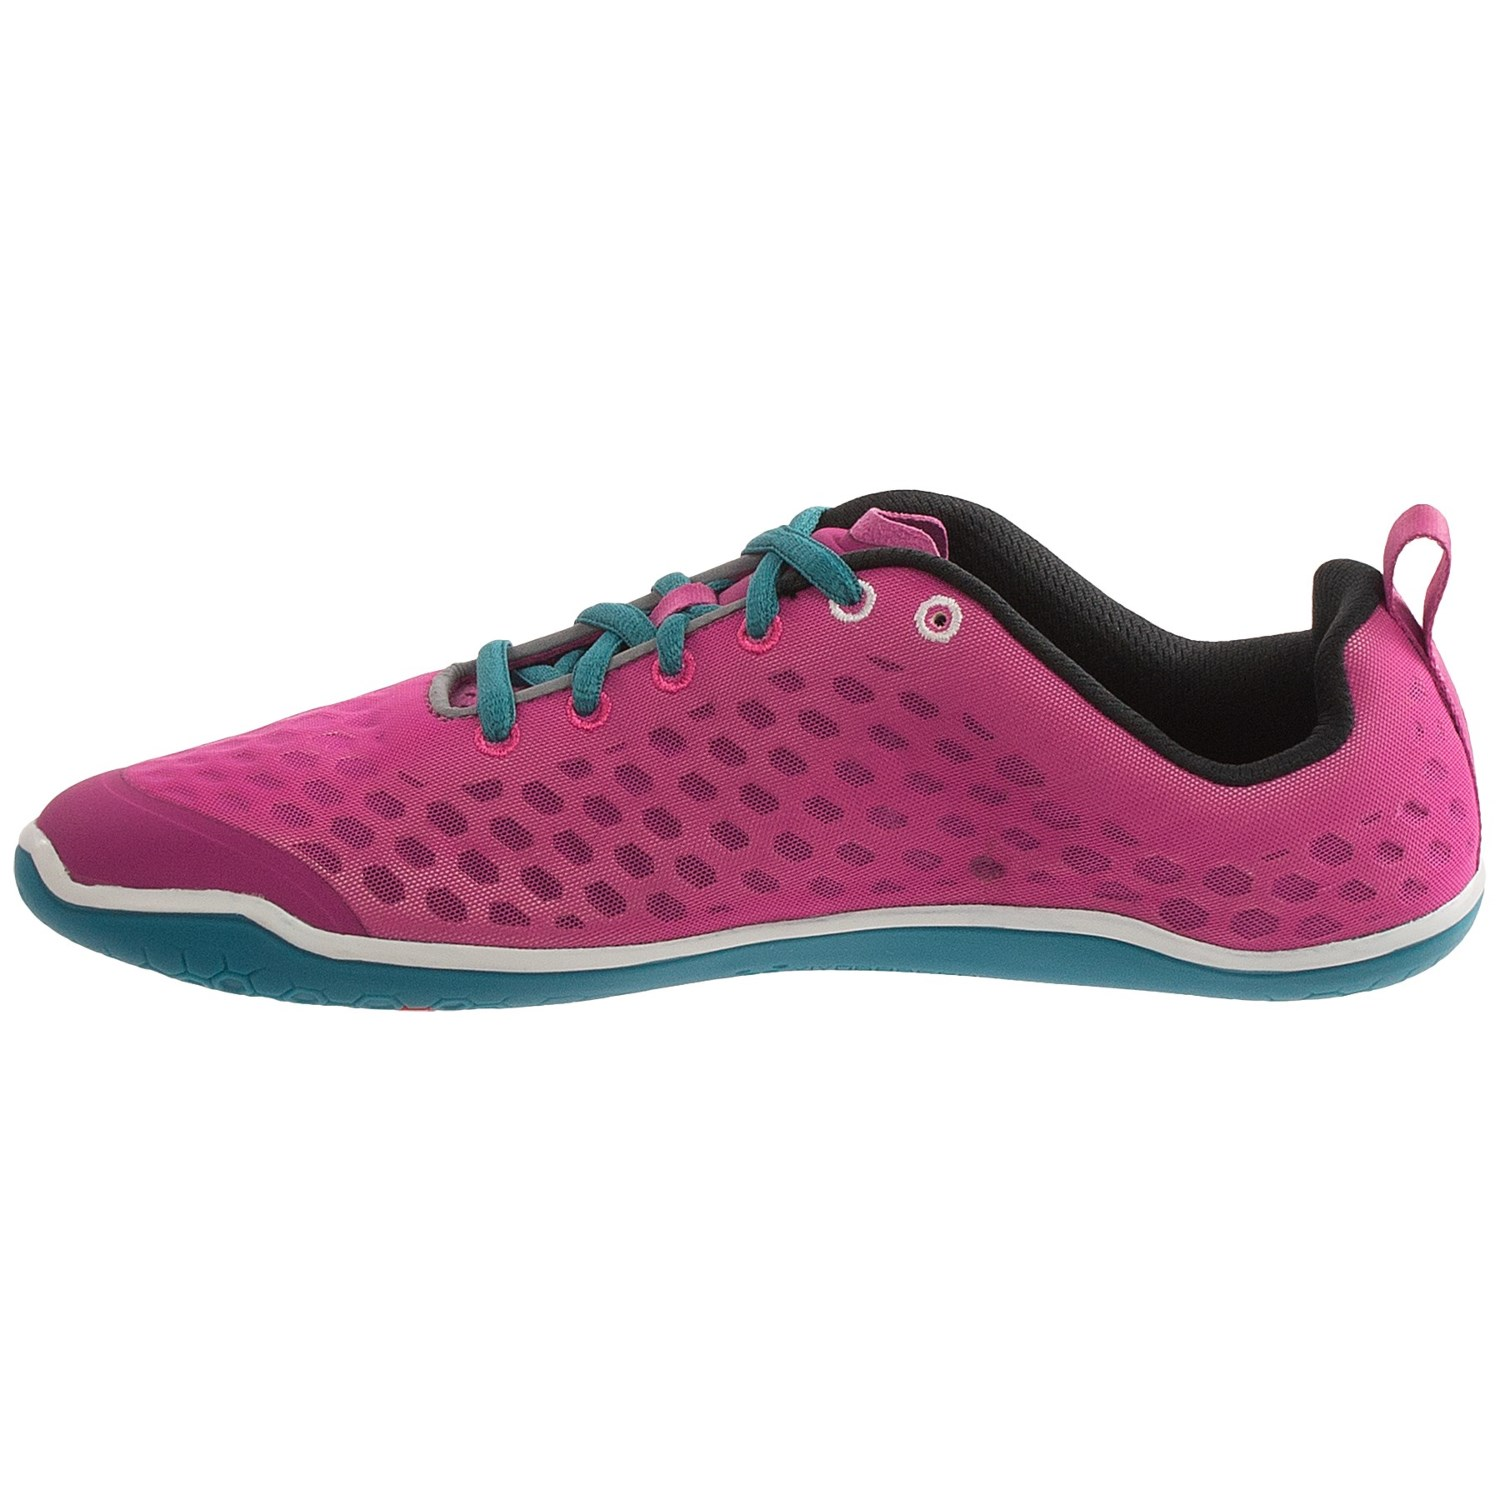 Vivobarefoot Running Shoes Review